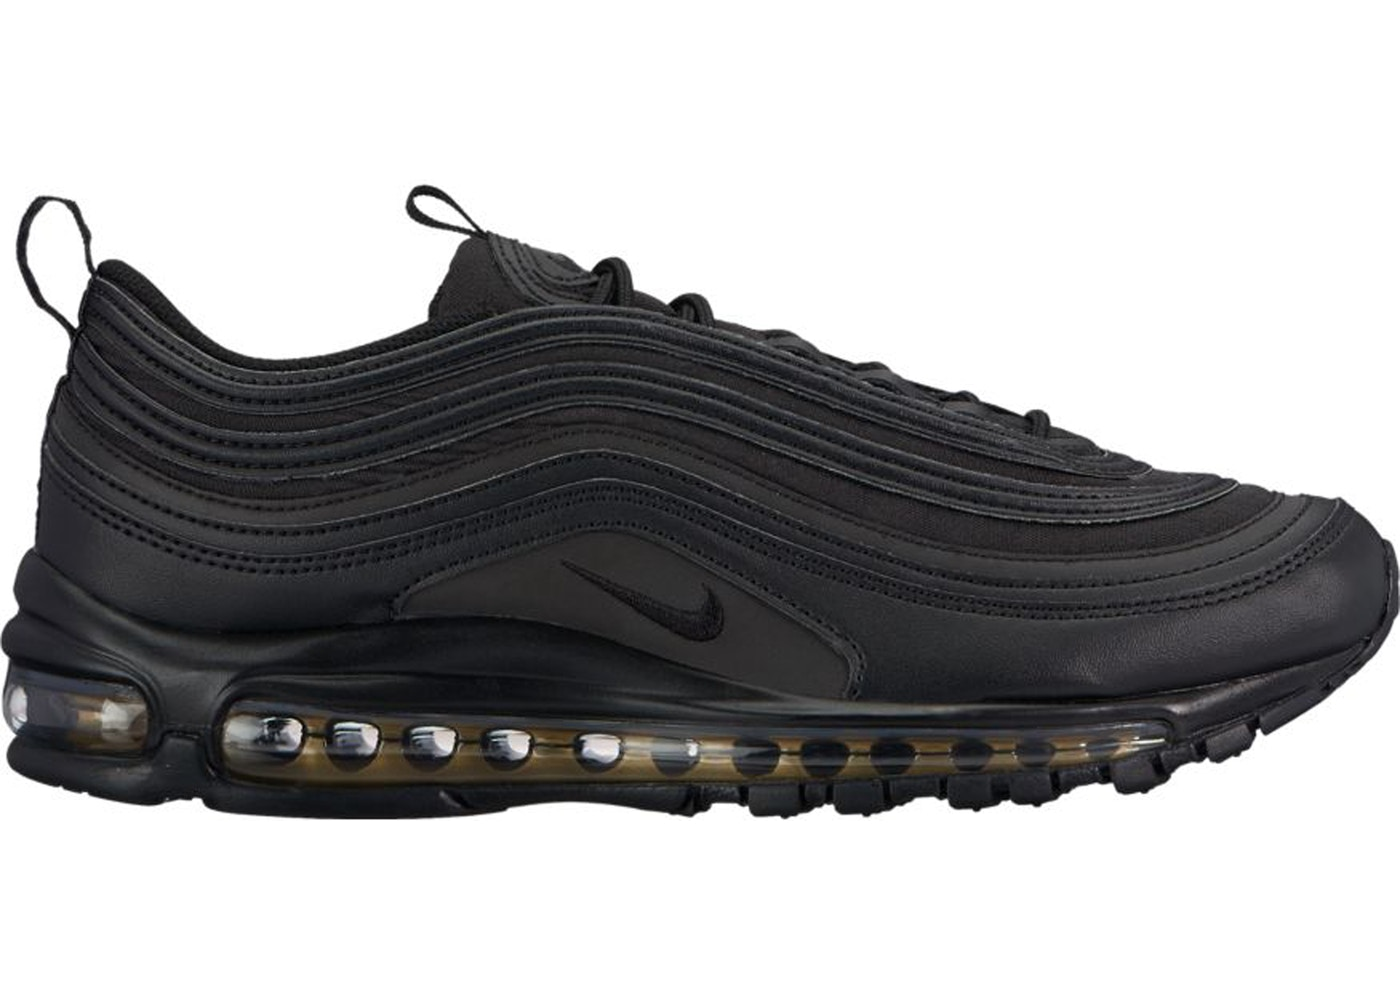 Air Max 97 Black Reflective Gold